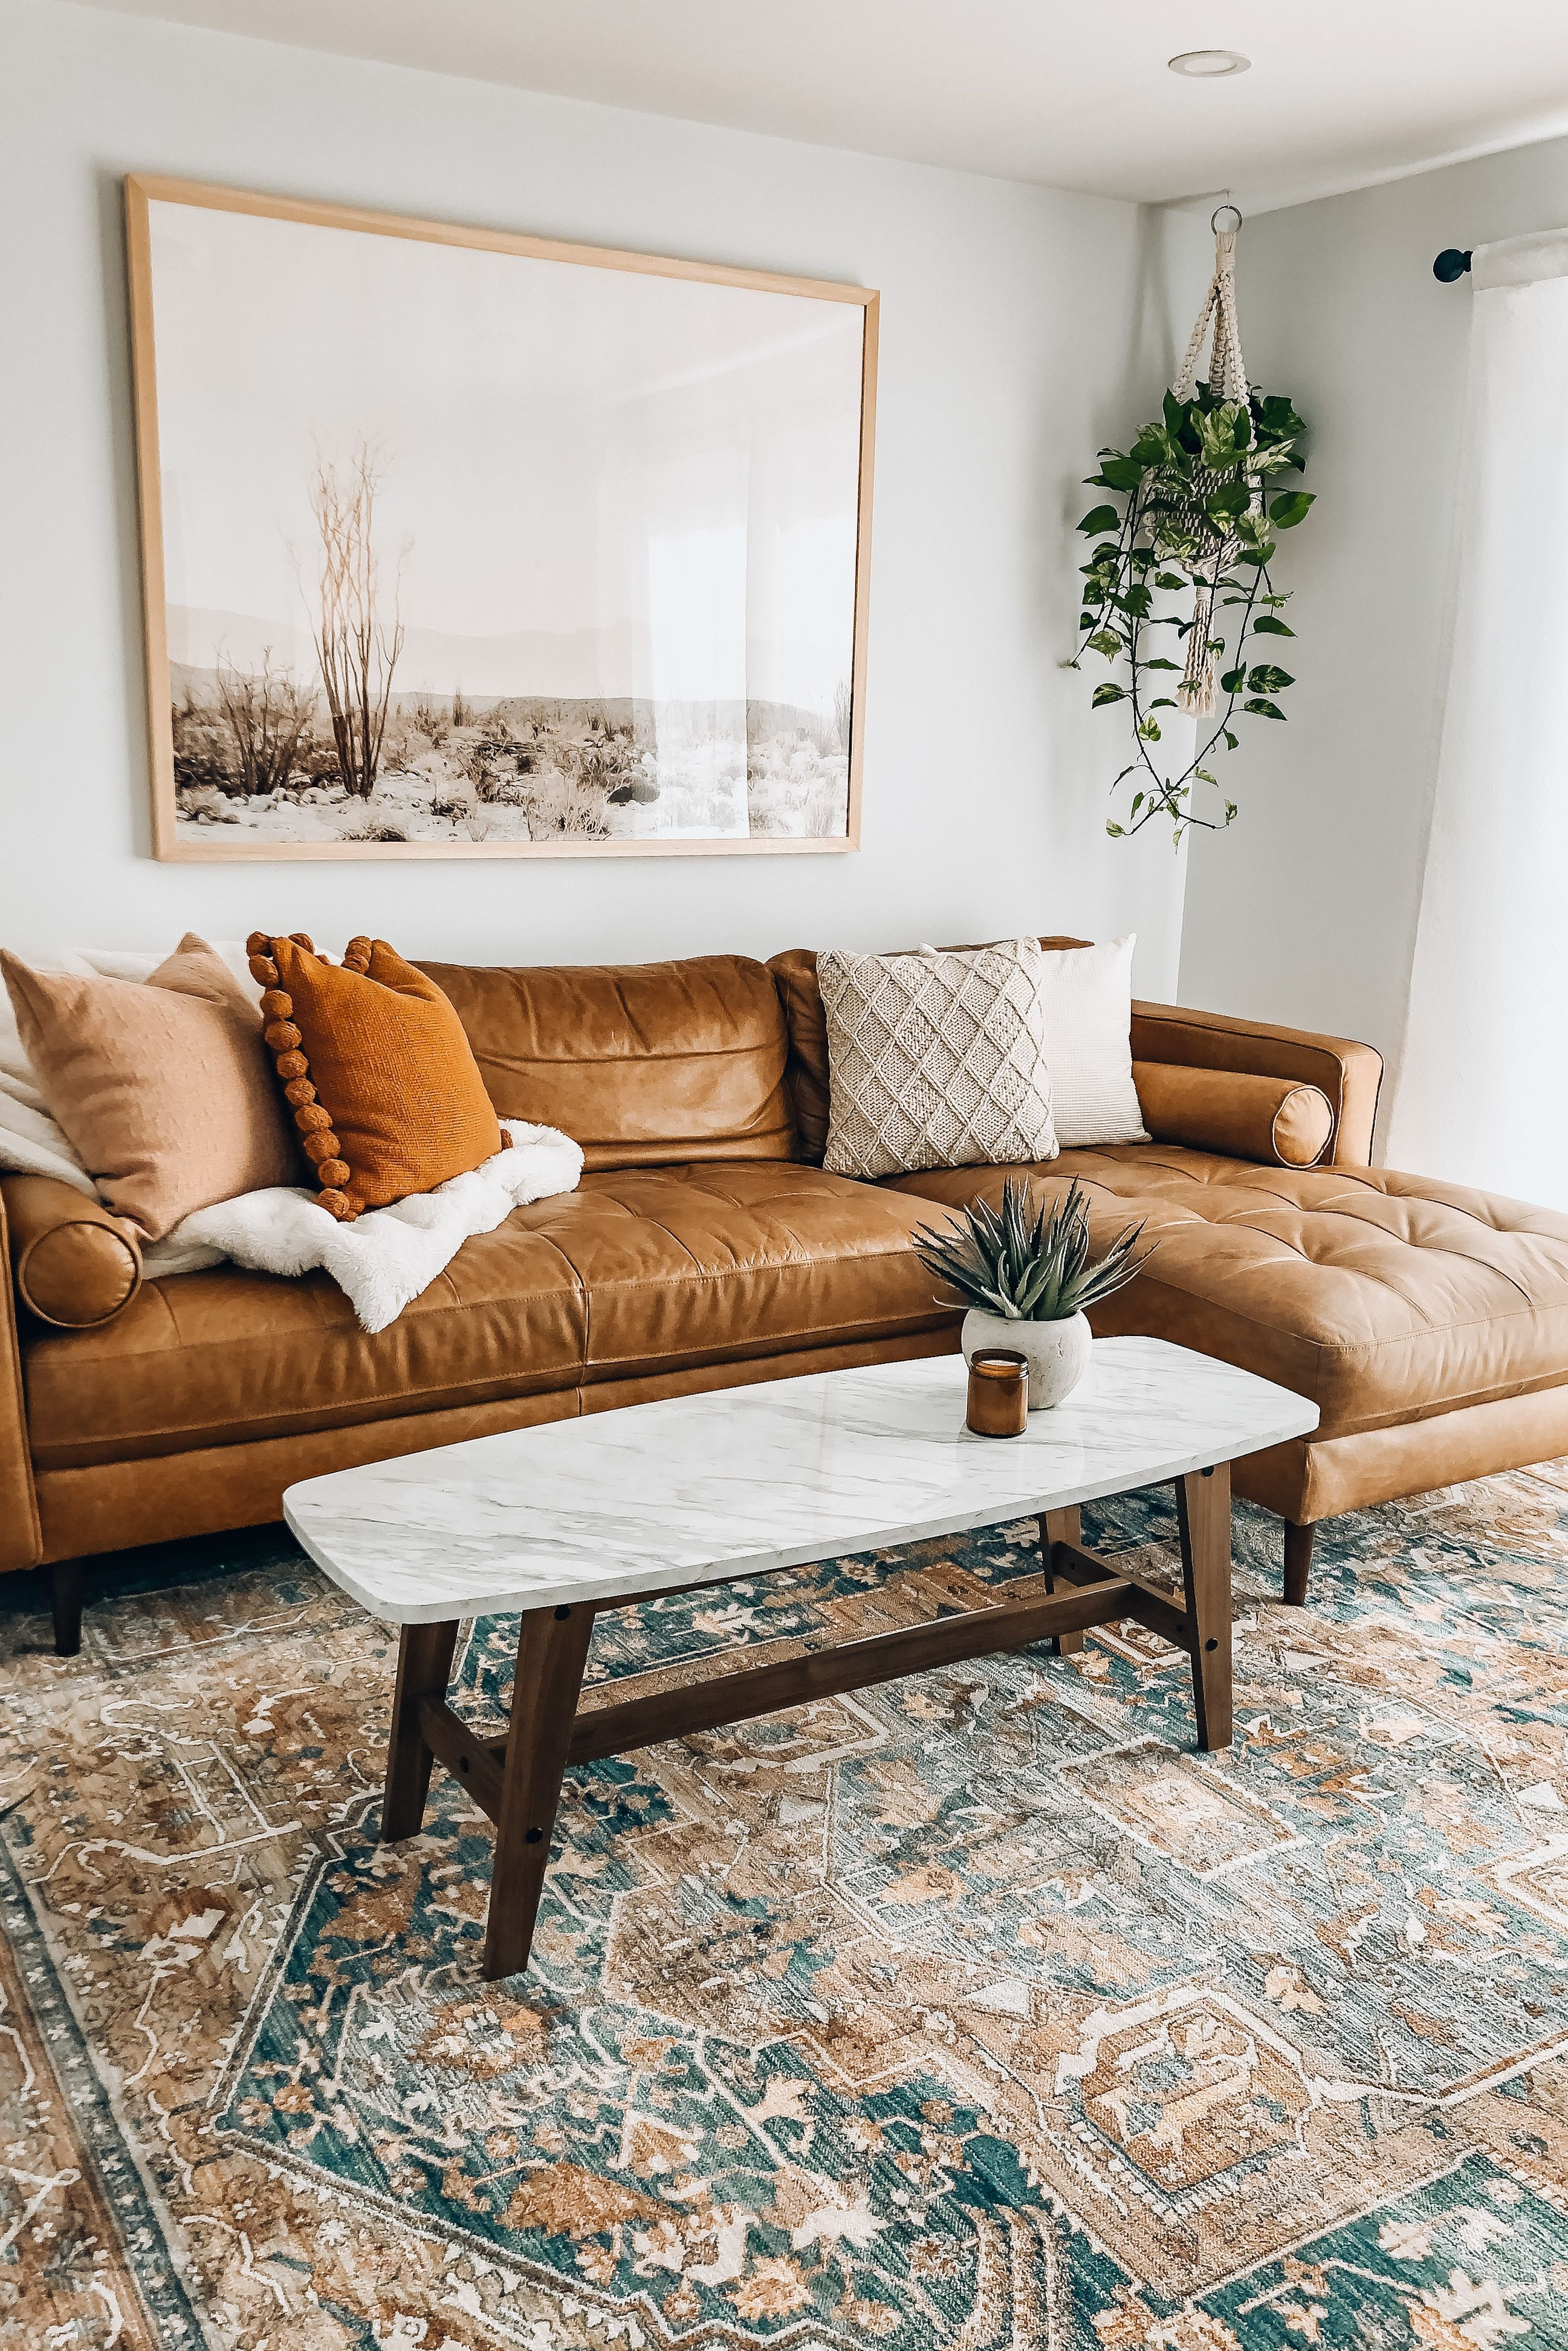 Get the look for your boho living room with plants that won't break your budget. Shop fake houseplants from Afloral.com. Image by @boneill_athome #fakeplants #homedecor #article #budgetdecor